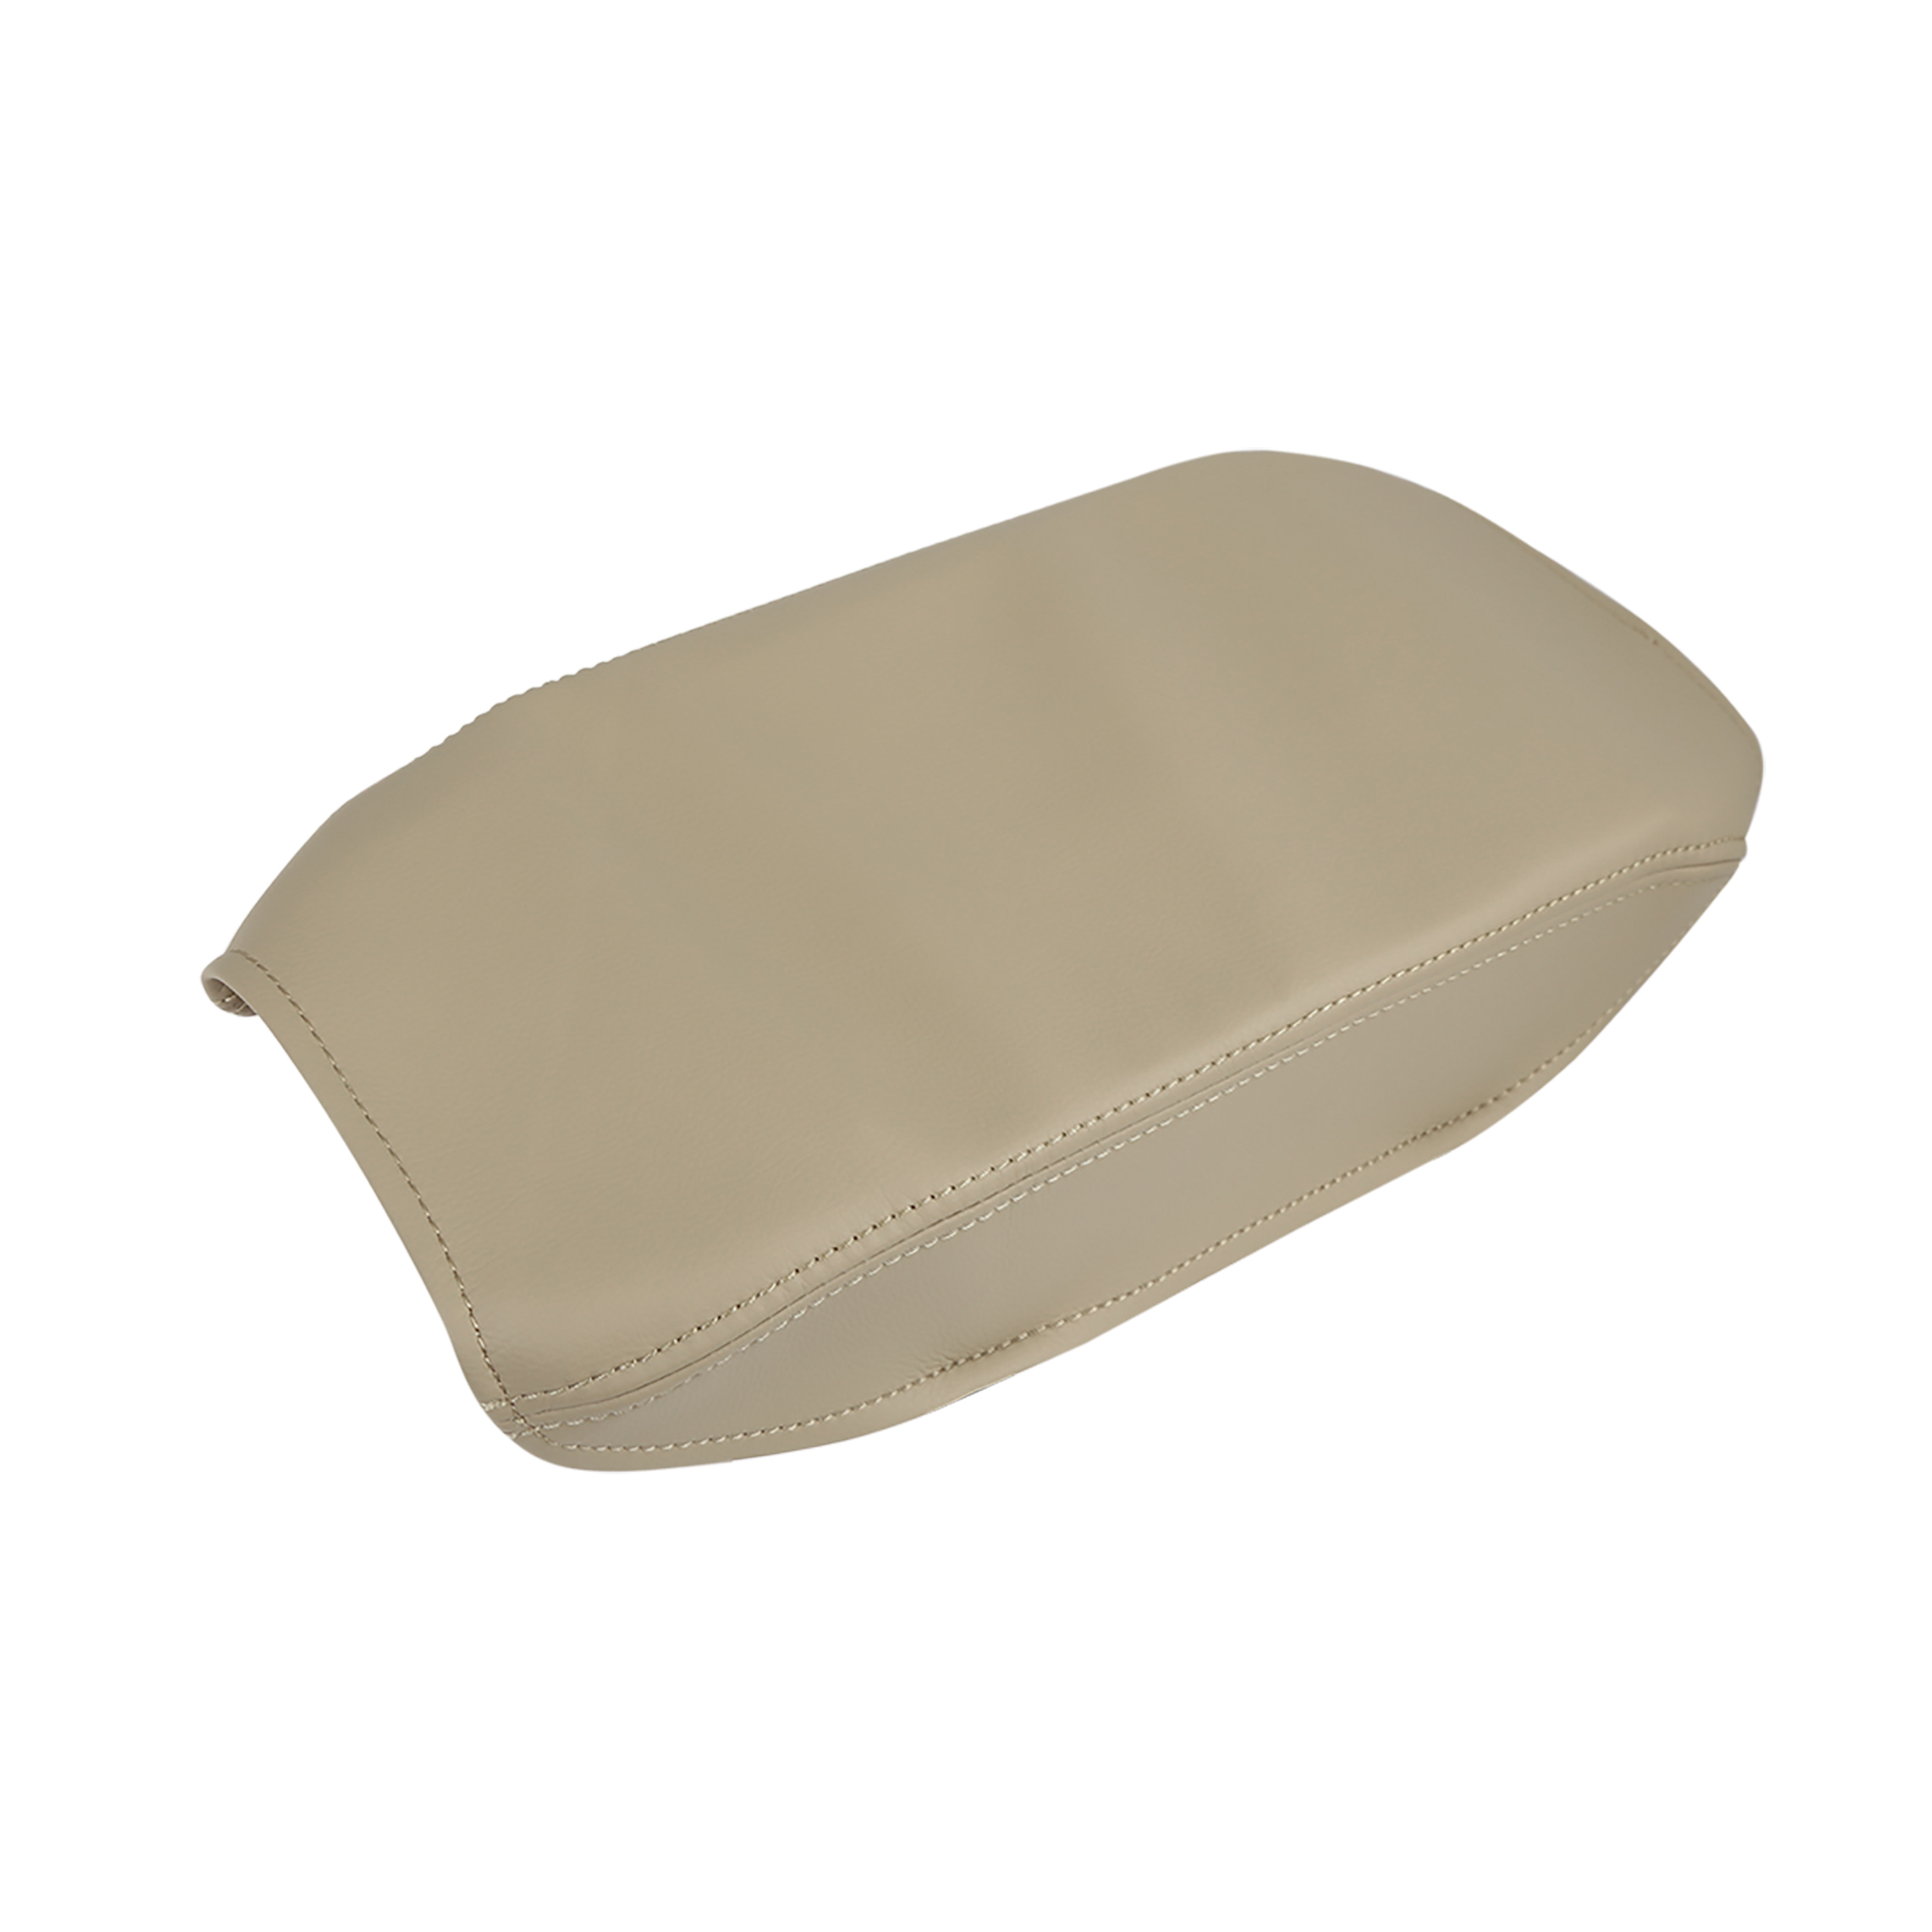 Microfiber Leather Center Console Lid Armrest Cover for 07-11 Toyota Camry